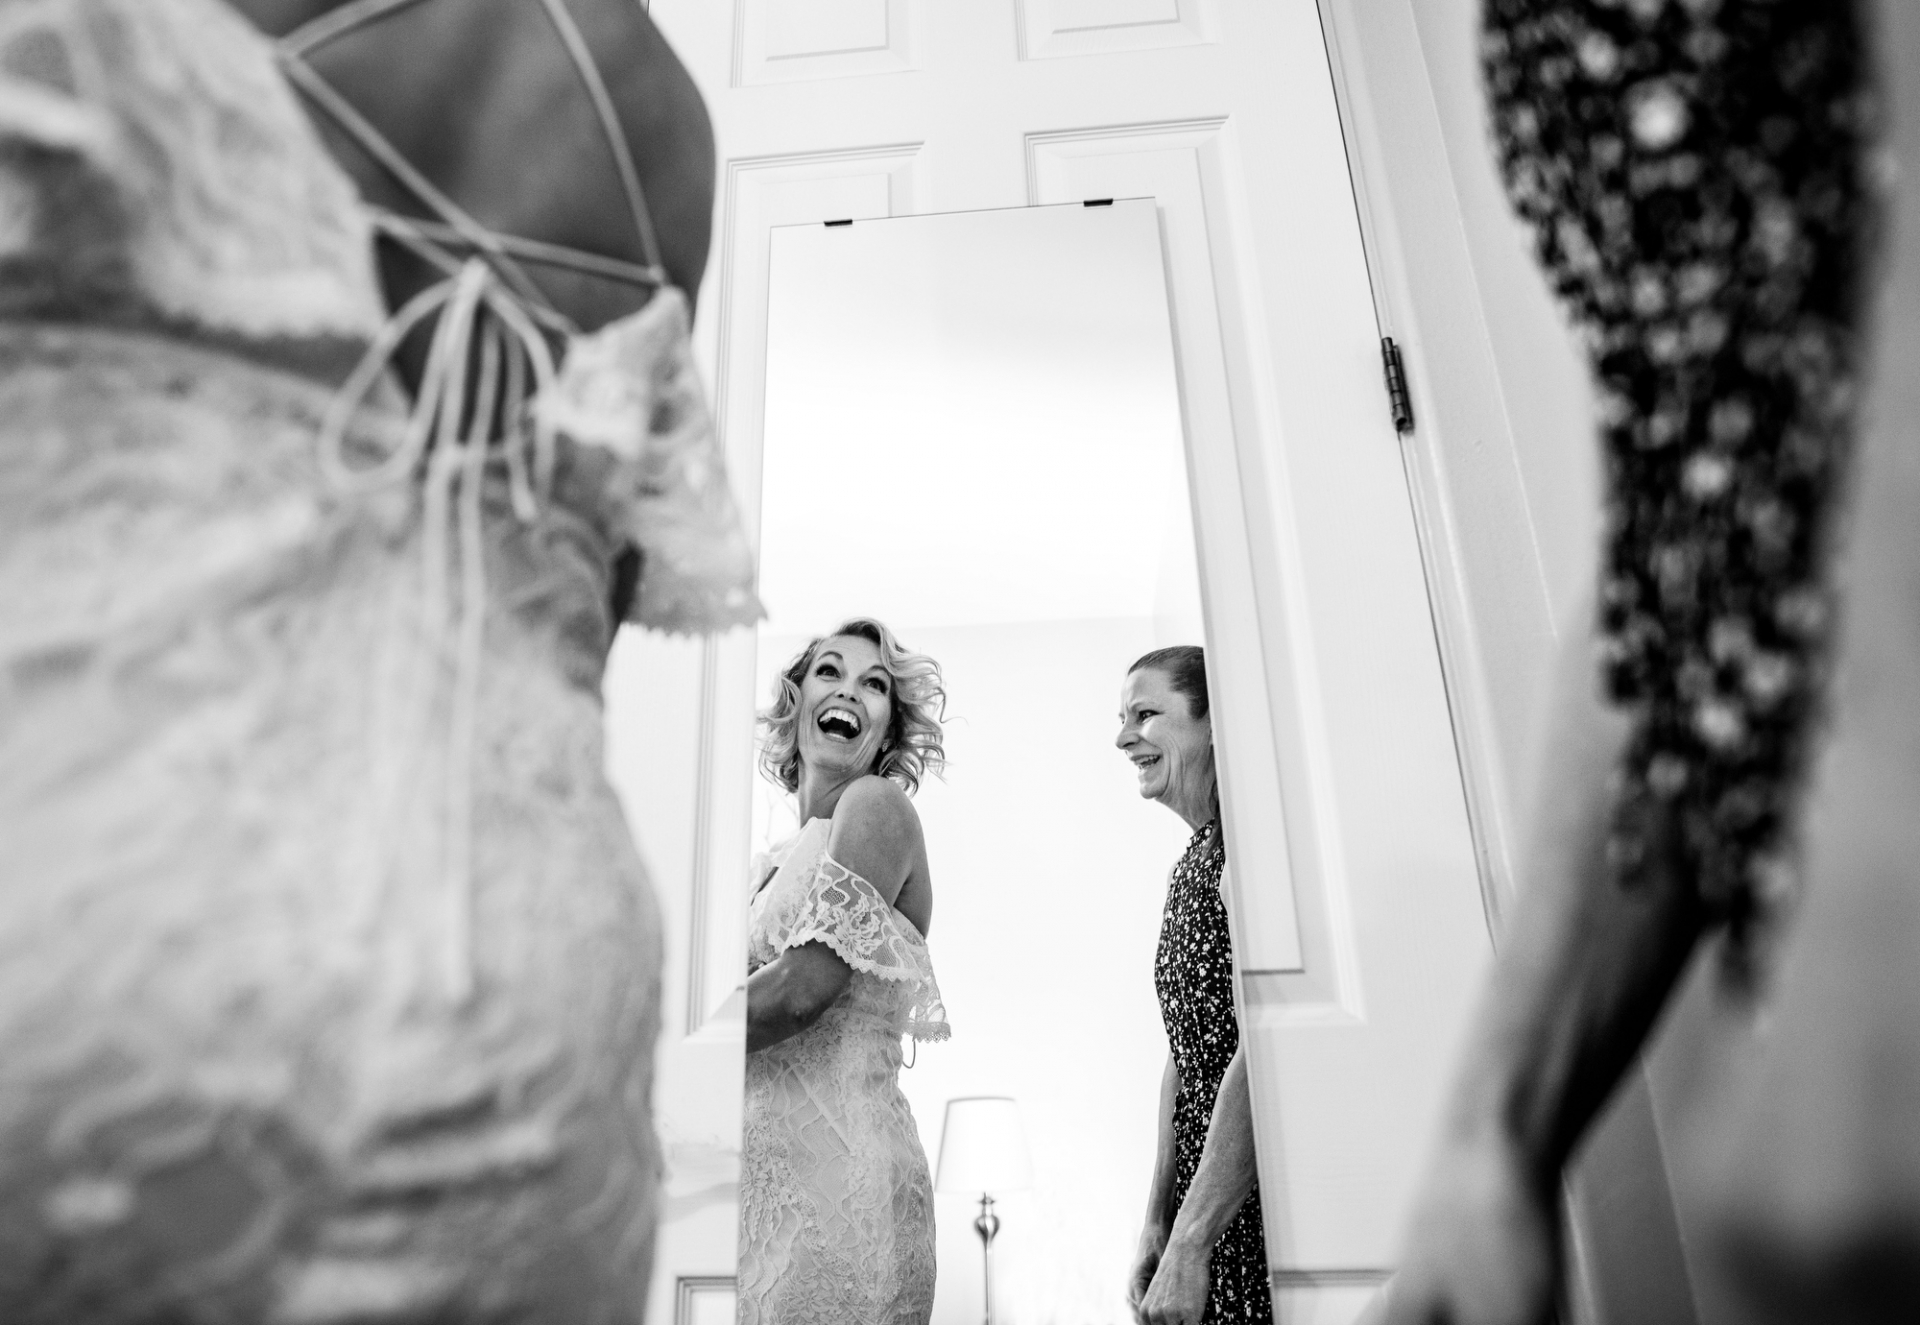 Desert Botanical Garden - Smaller-Size Wedding Pictures | The bride cries out in delight as she sees her bridal look reflecting back at her